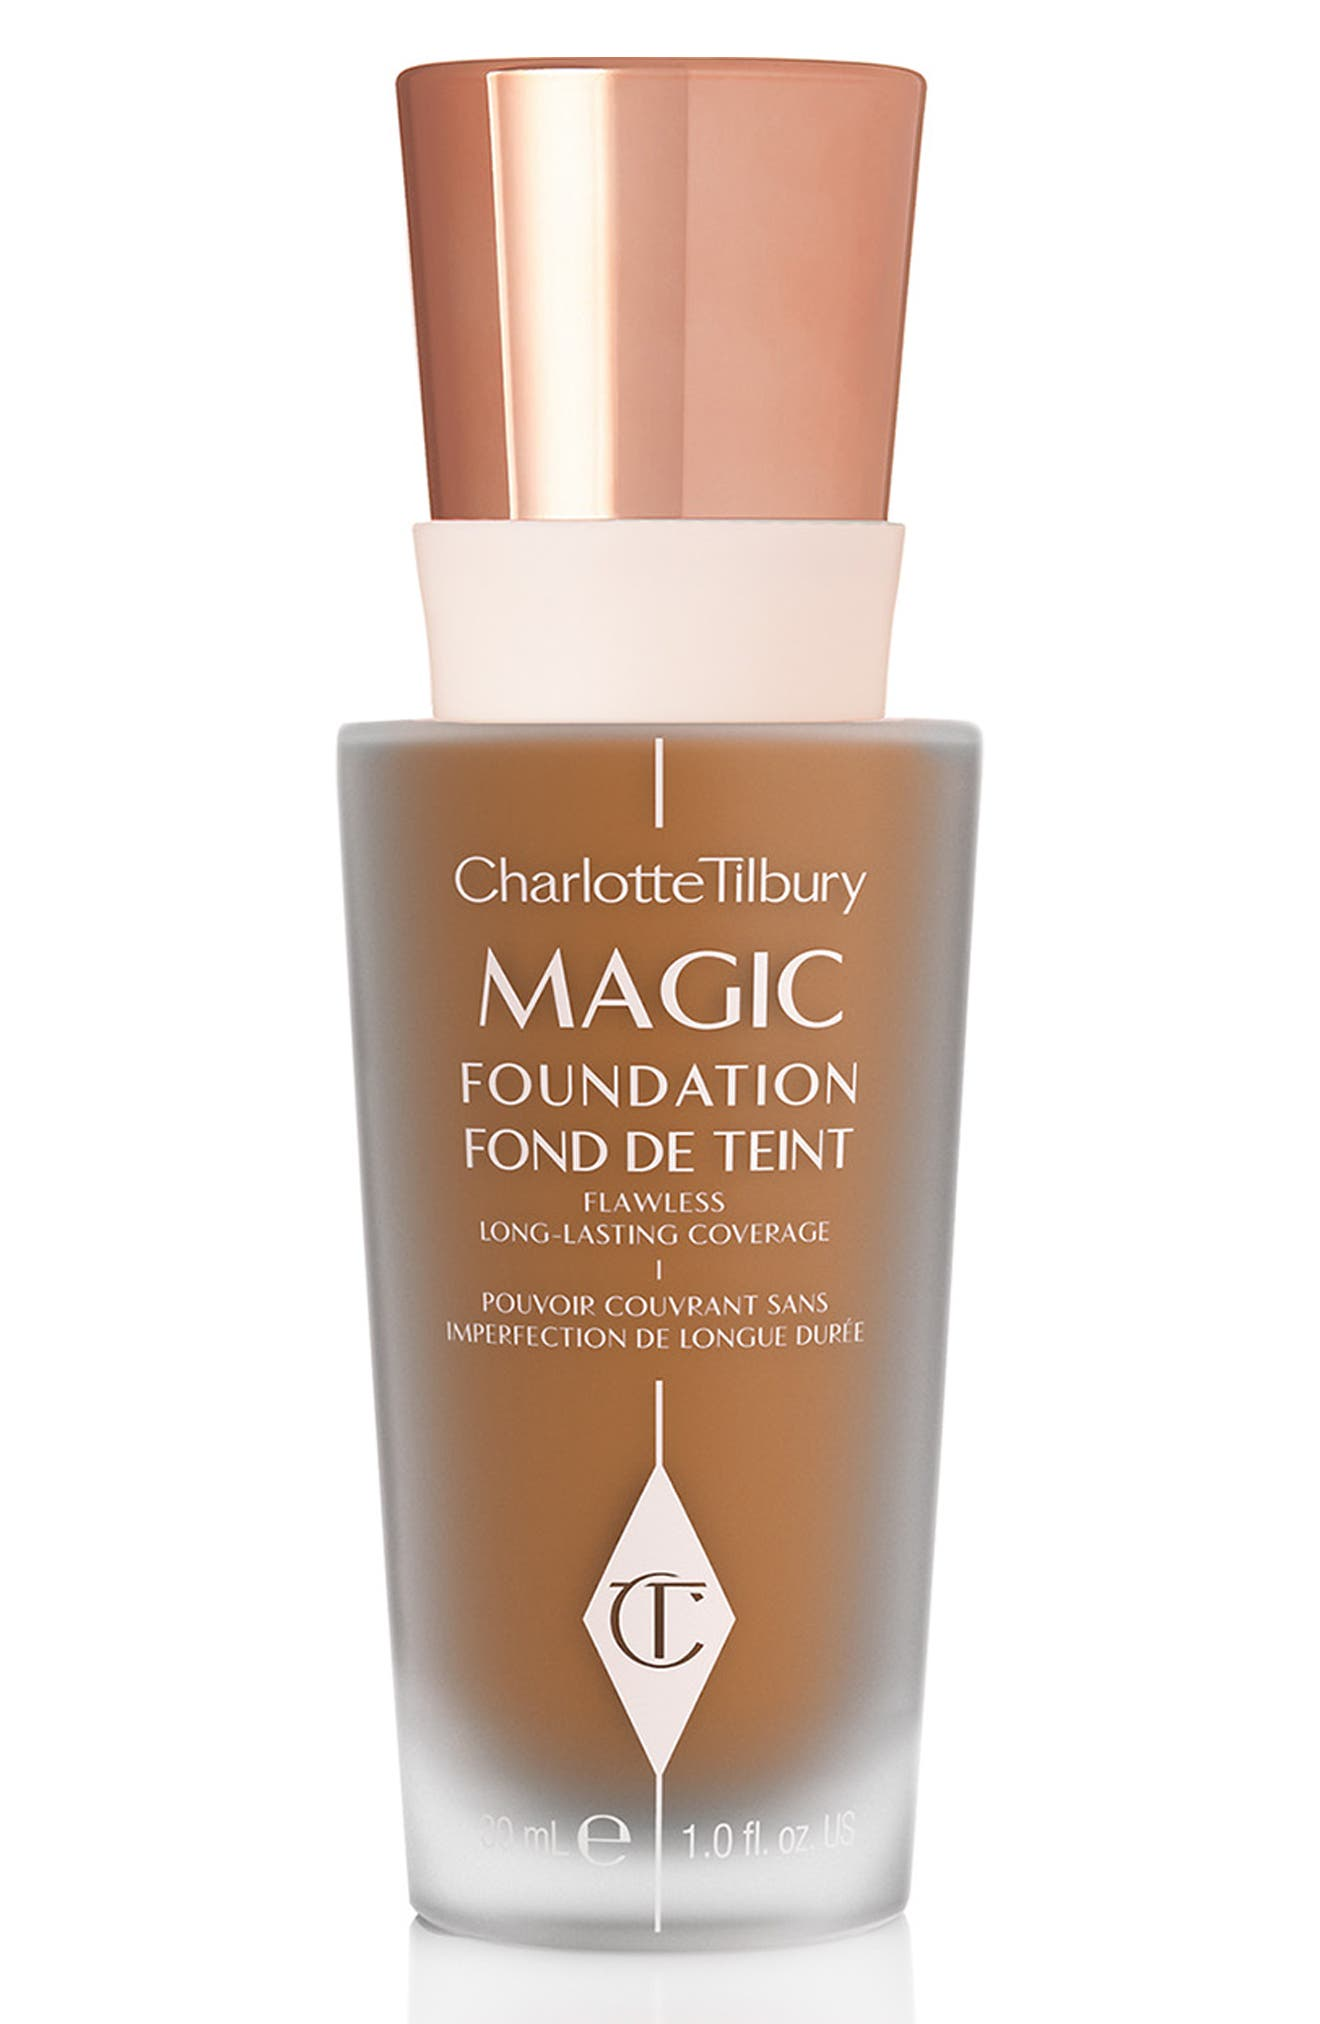 CHARLOTTE TILBURY MAGIC FOUNDATION BROAD SPECTRUM SPF 15 - 11 DARK